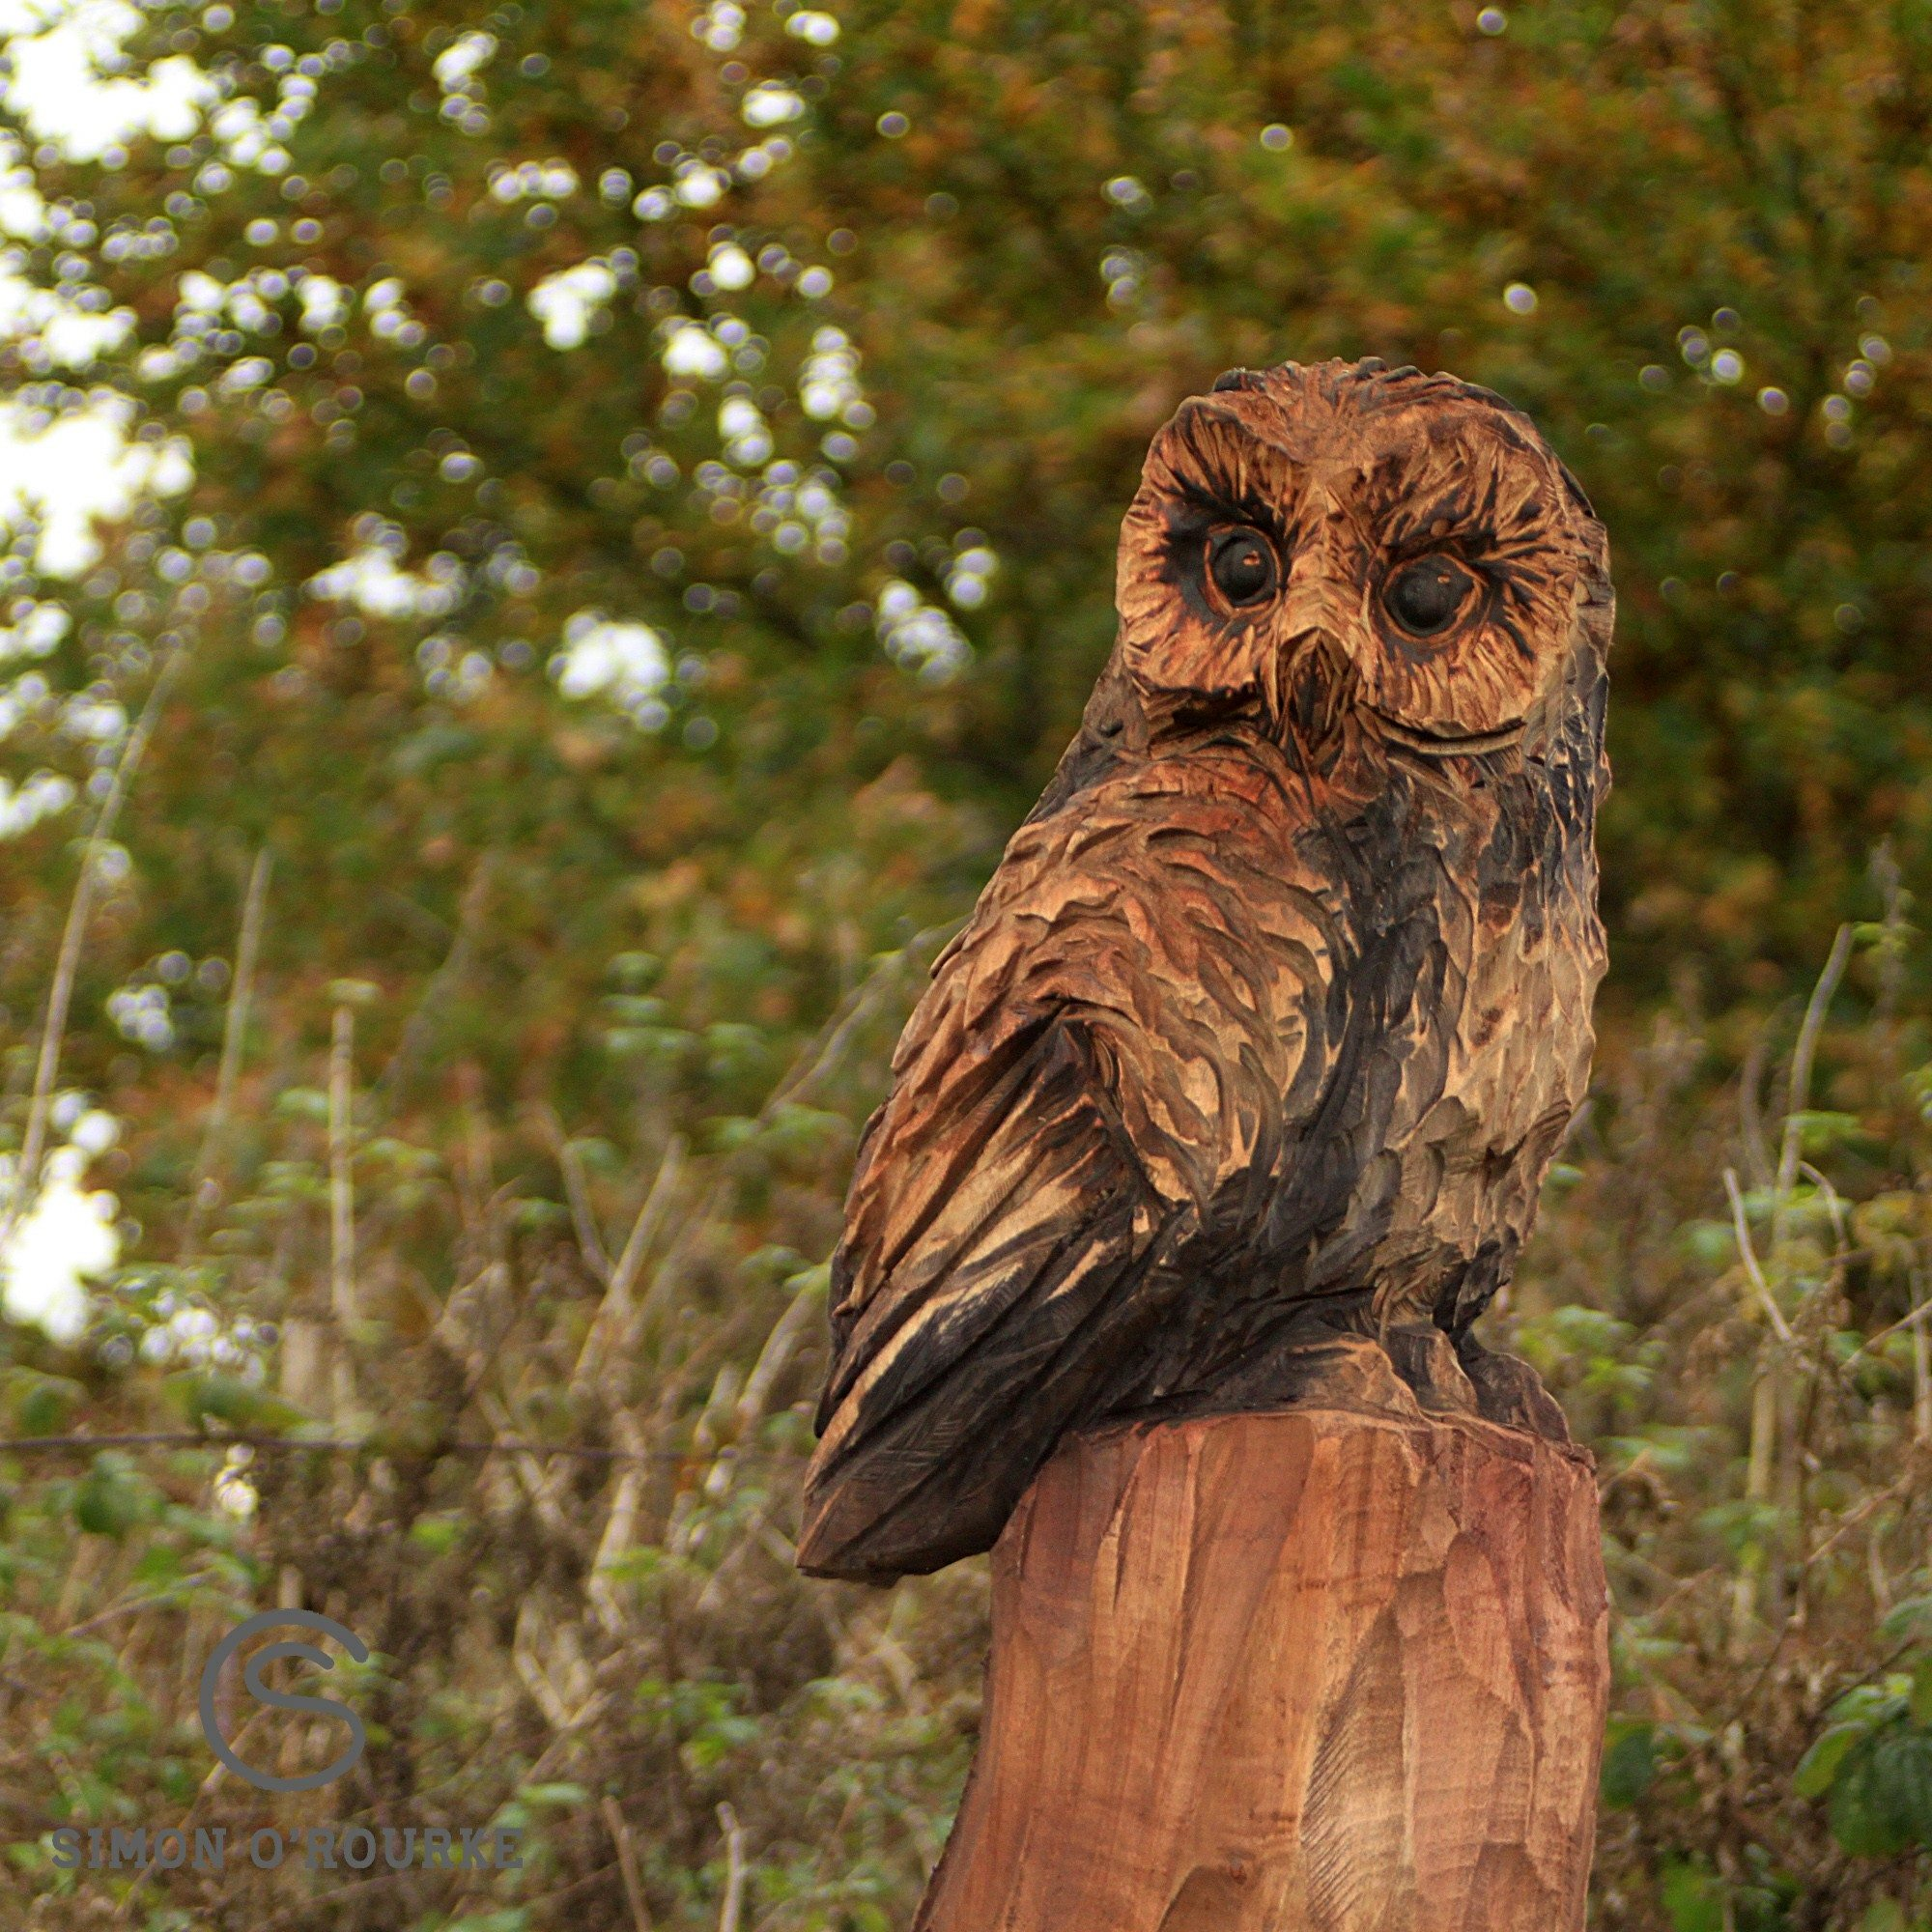 wooden carved owl sitting on a tree stump. The Owl is from Simon O'Rourke's woodland sculpture trail in Meadow Park.